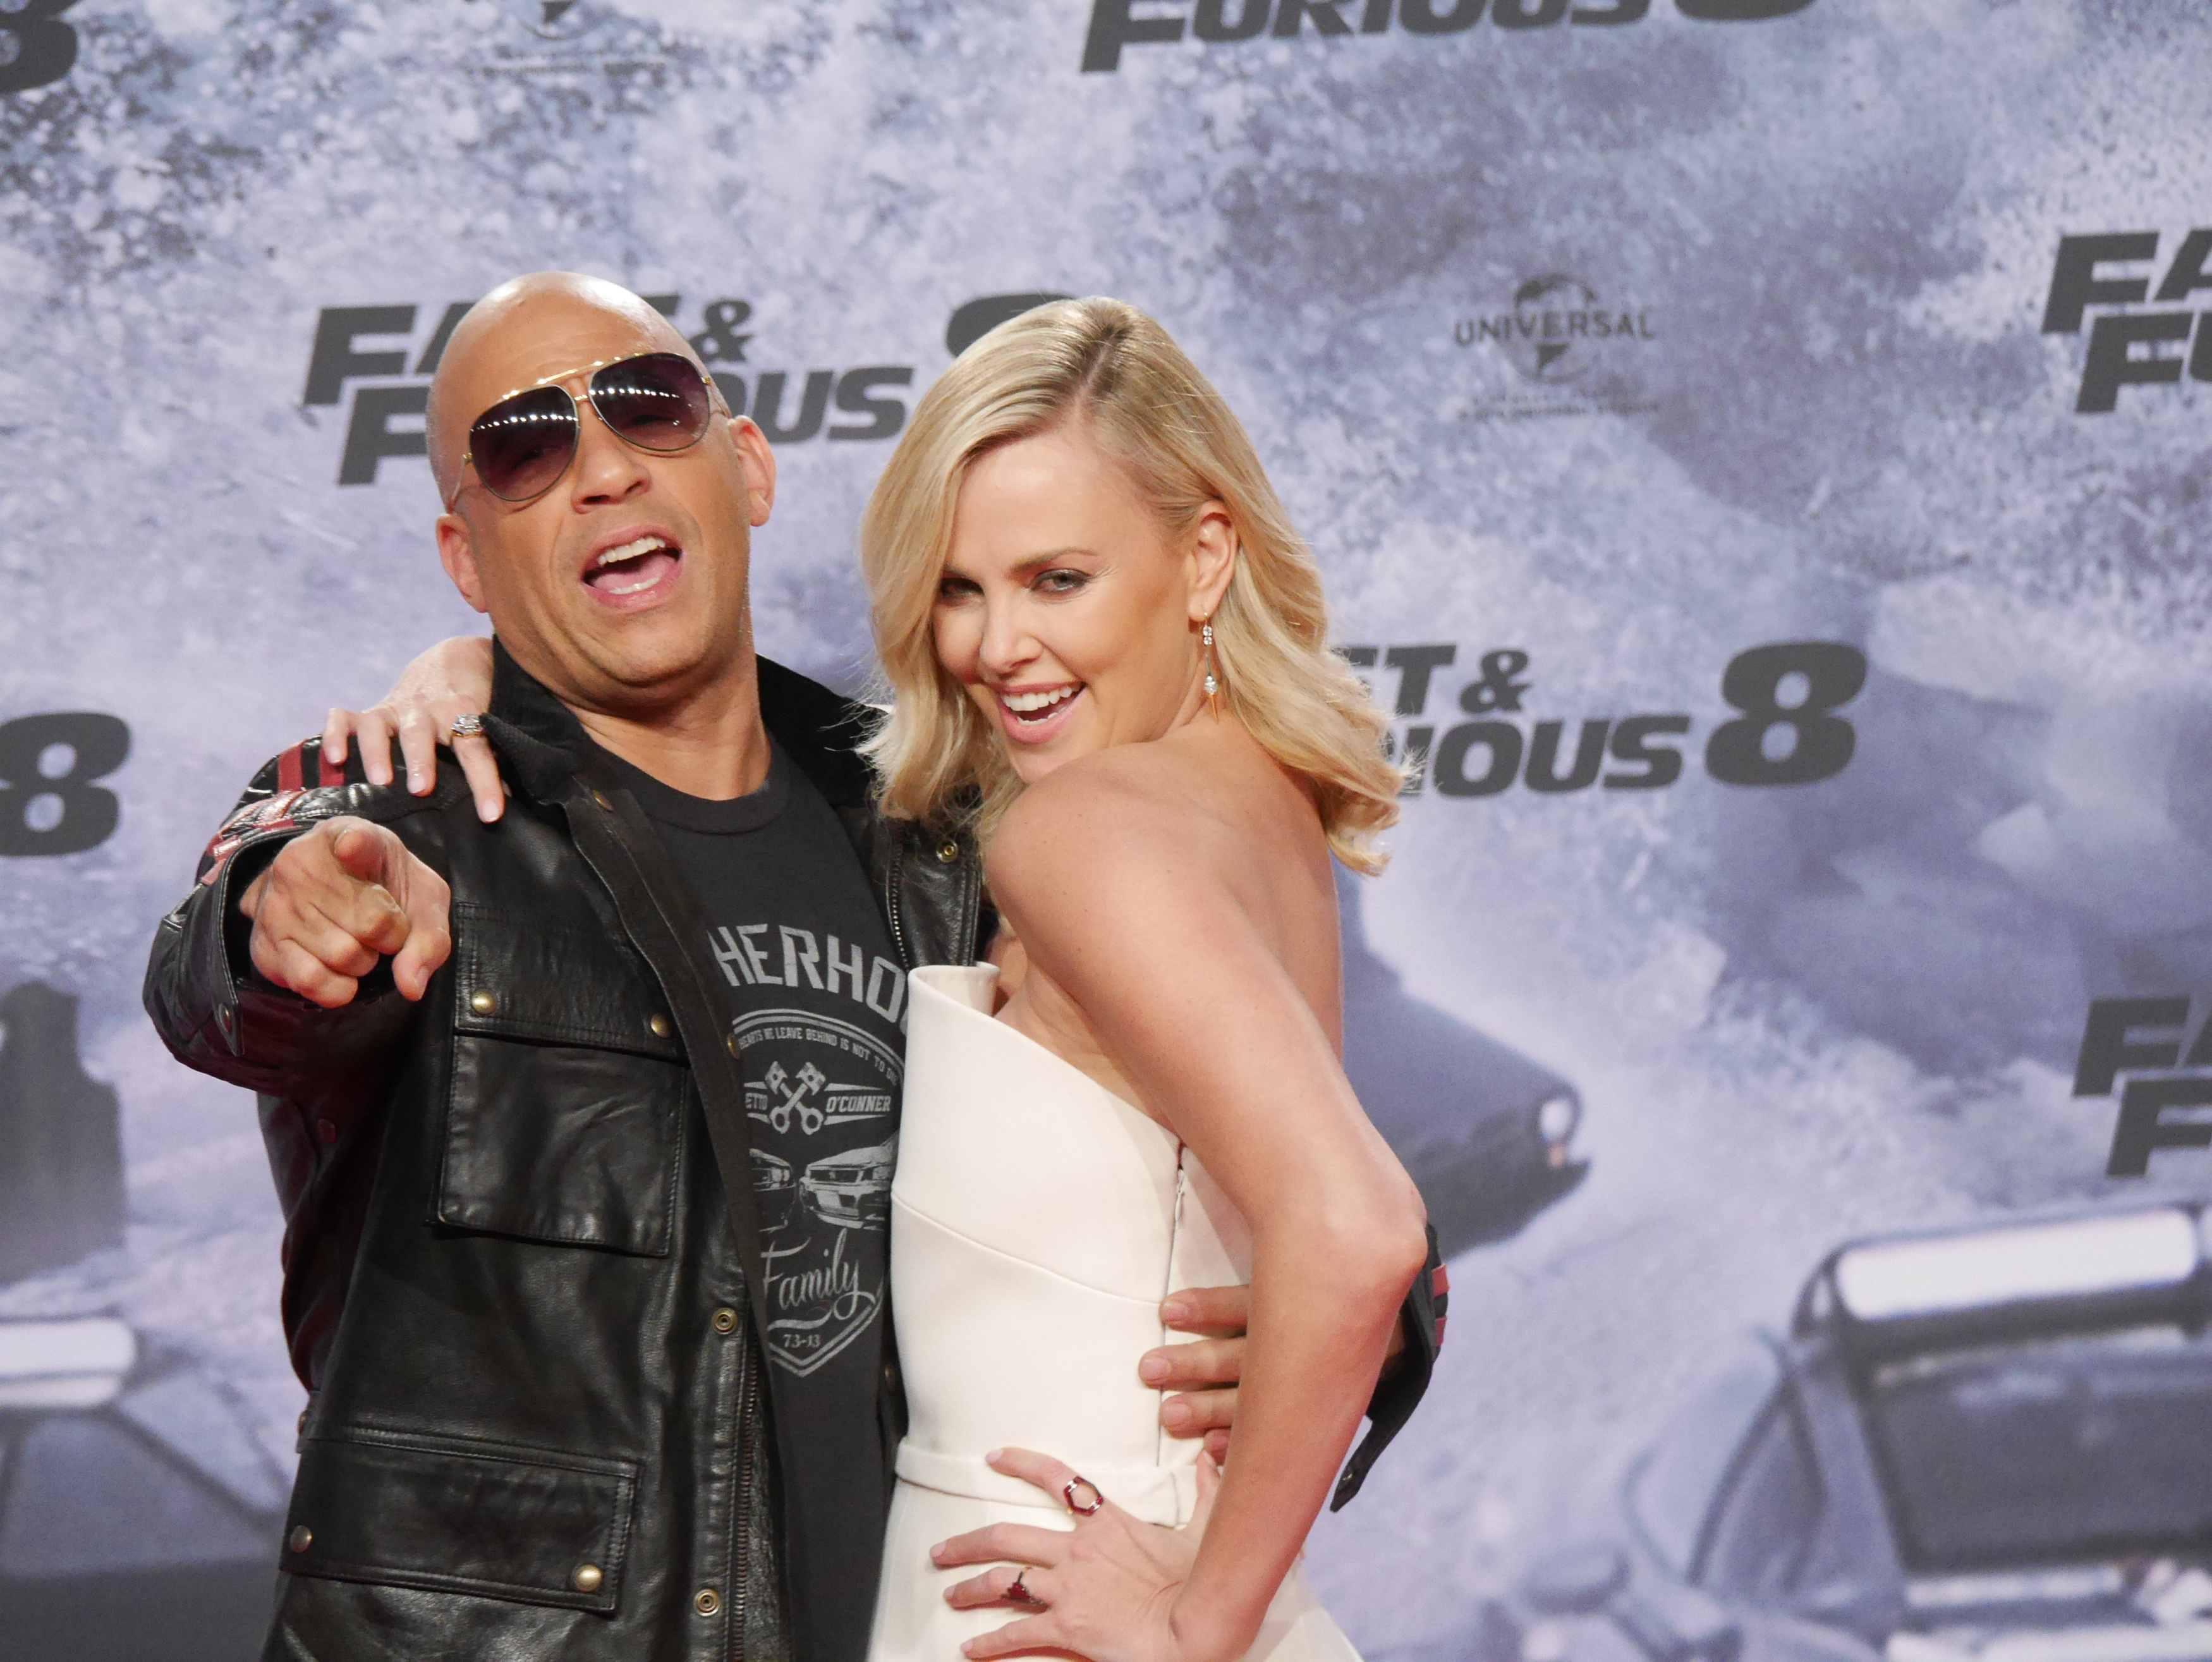 Premiere 'Fast and Furious 8' at CineStar Sony Center Potsdamer Platz.  Featuring: Vin Diesel, Charlize Theron Where: Berlin, Germany When: 04 Apr 2017 Credit: WENN.com